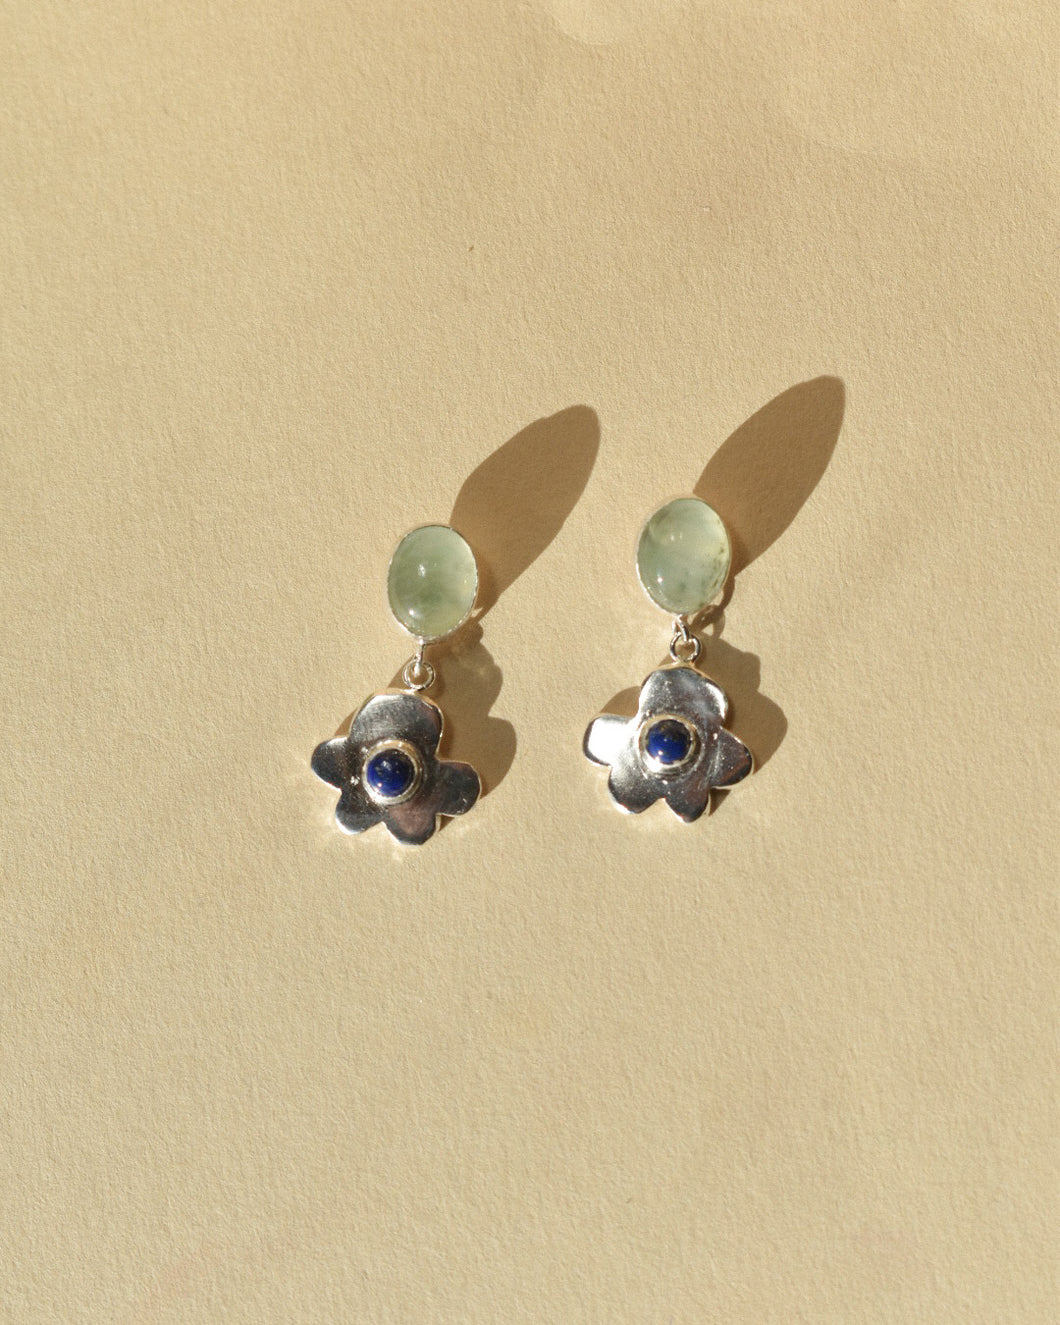 Fancy Pansy Earrings | Recycled Silver Pansy with Lapis Lazuli and Prehnite